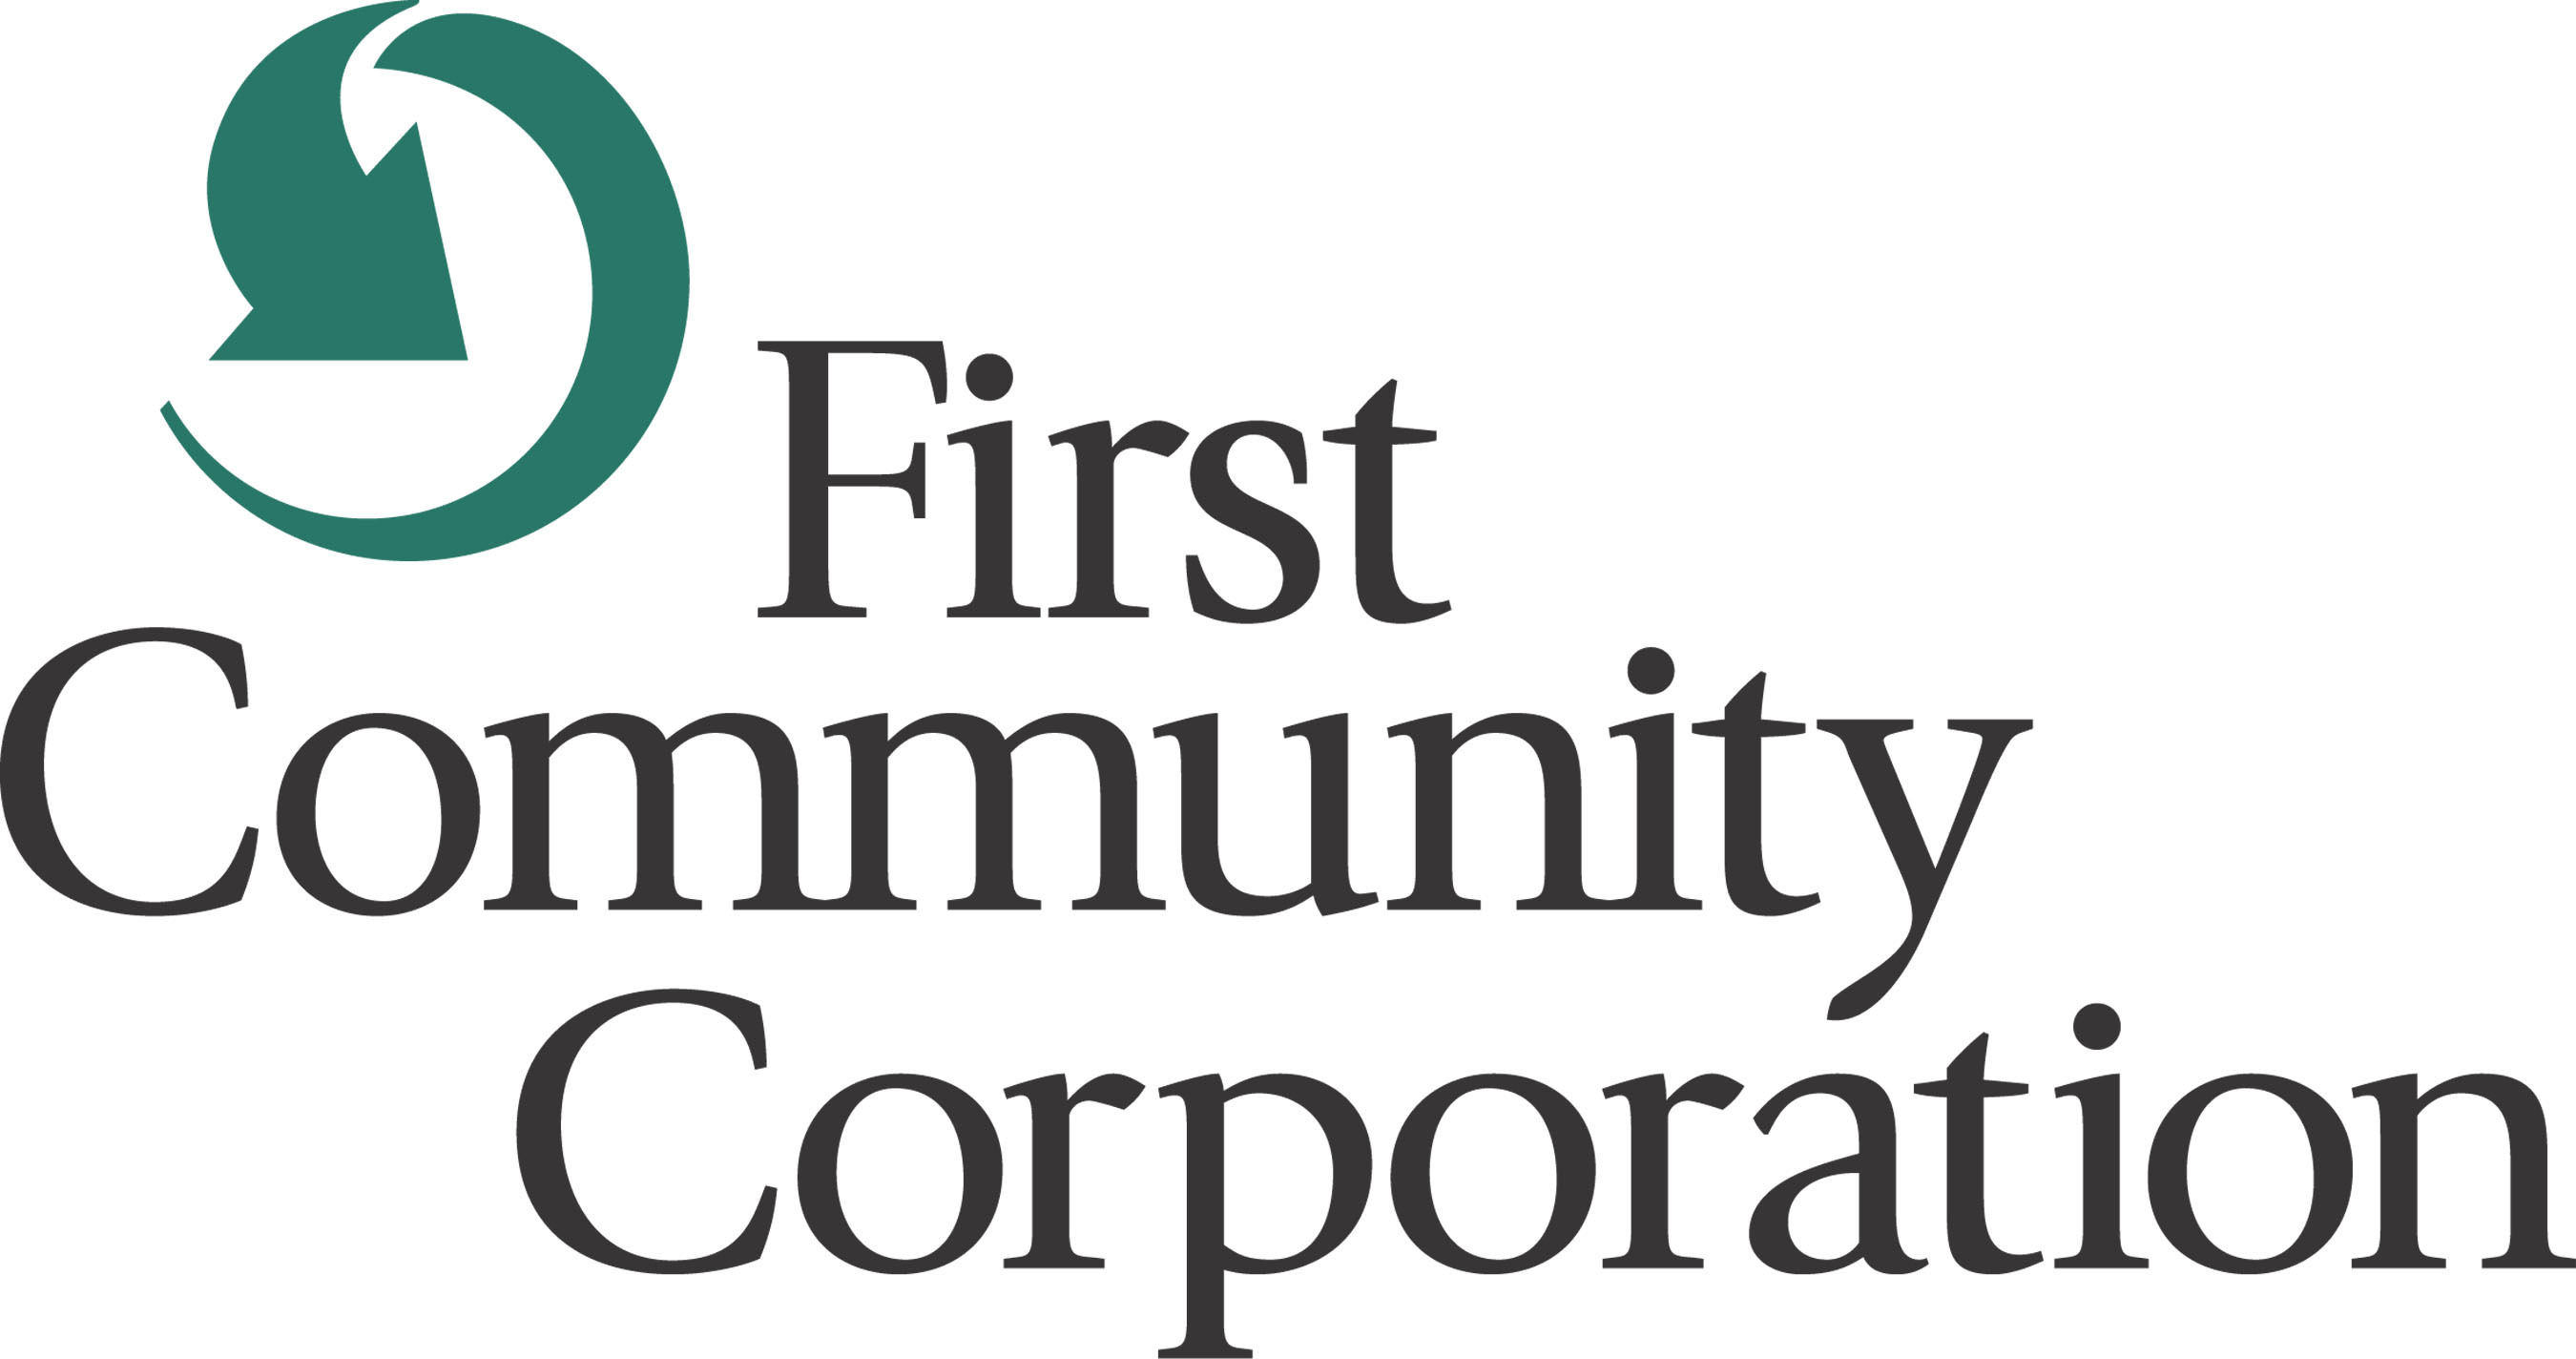 First Community Corporation logo